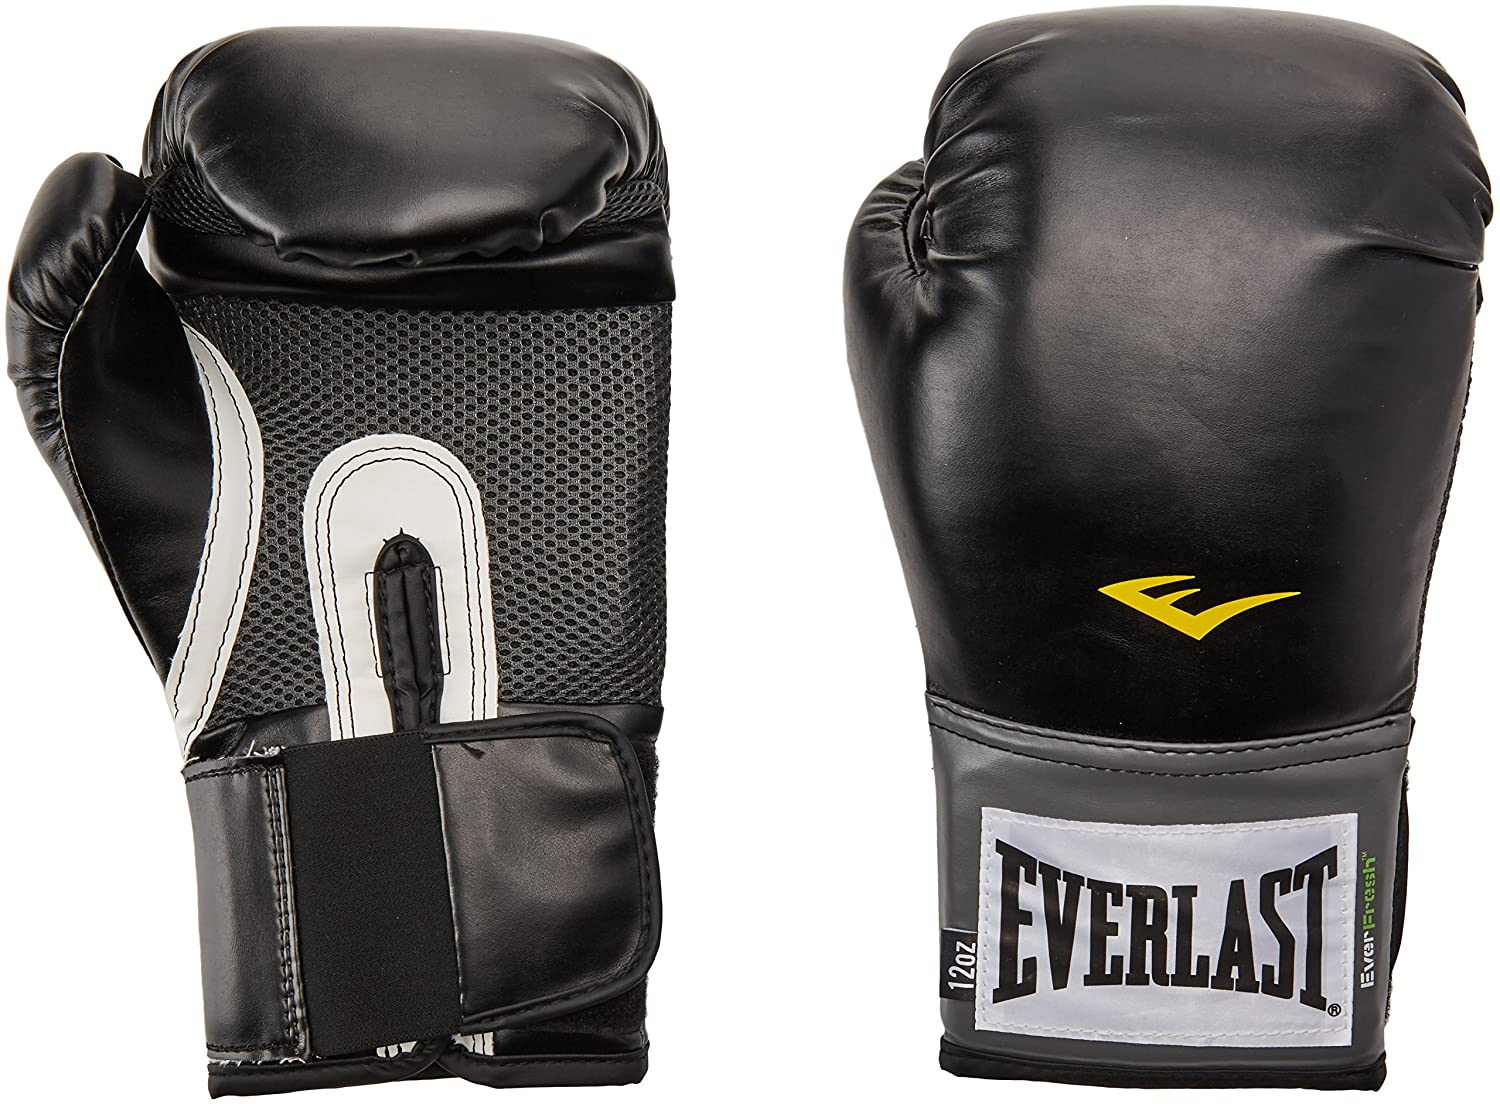 The Best Boxing Training Gloves 4